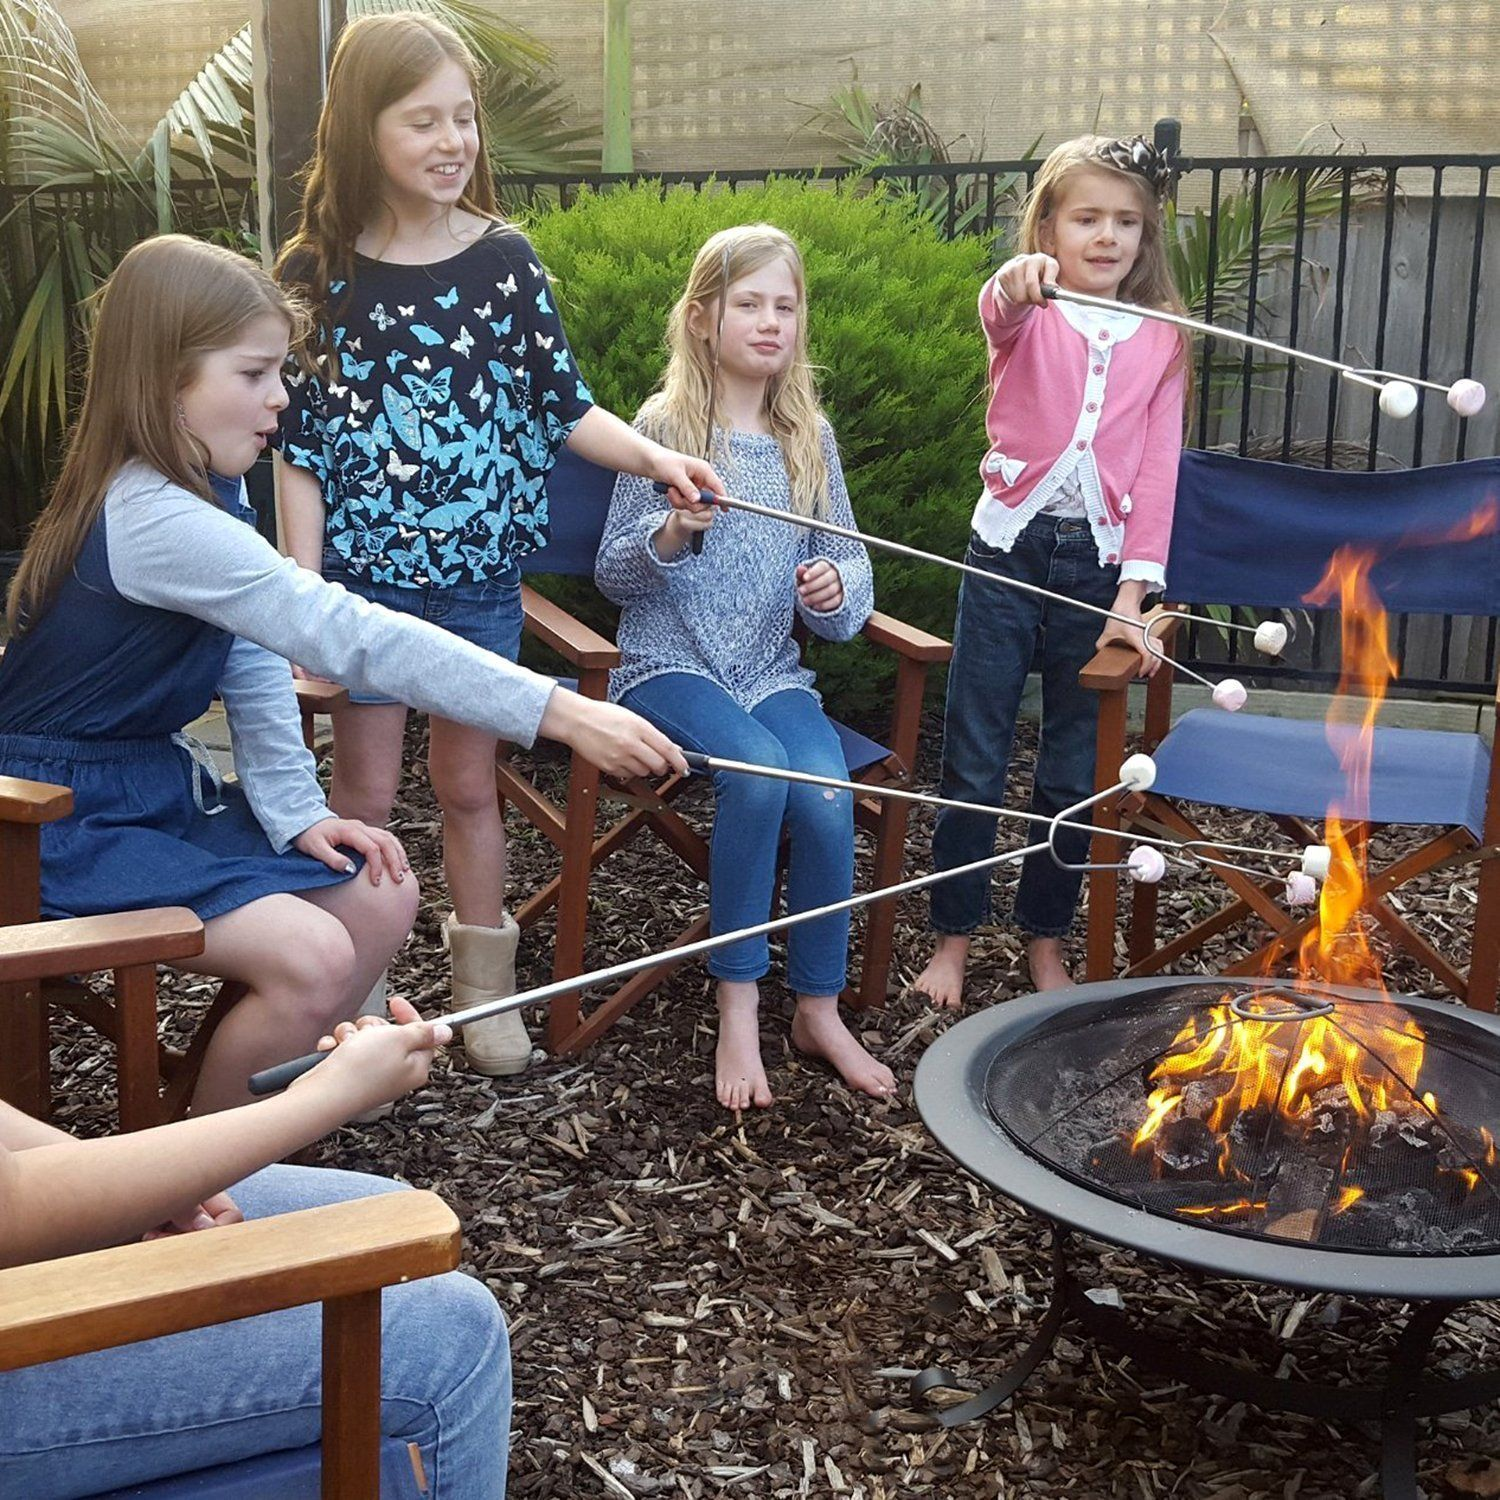 Amazon Marshmallow Roasting Sticks Telescoping Smores Skewers For BBQ Hot Dog Fork 32 Inch Patio Fire Pit Camping Cookware Campfire Cooking